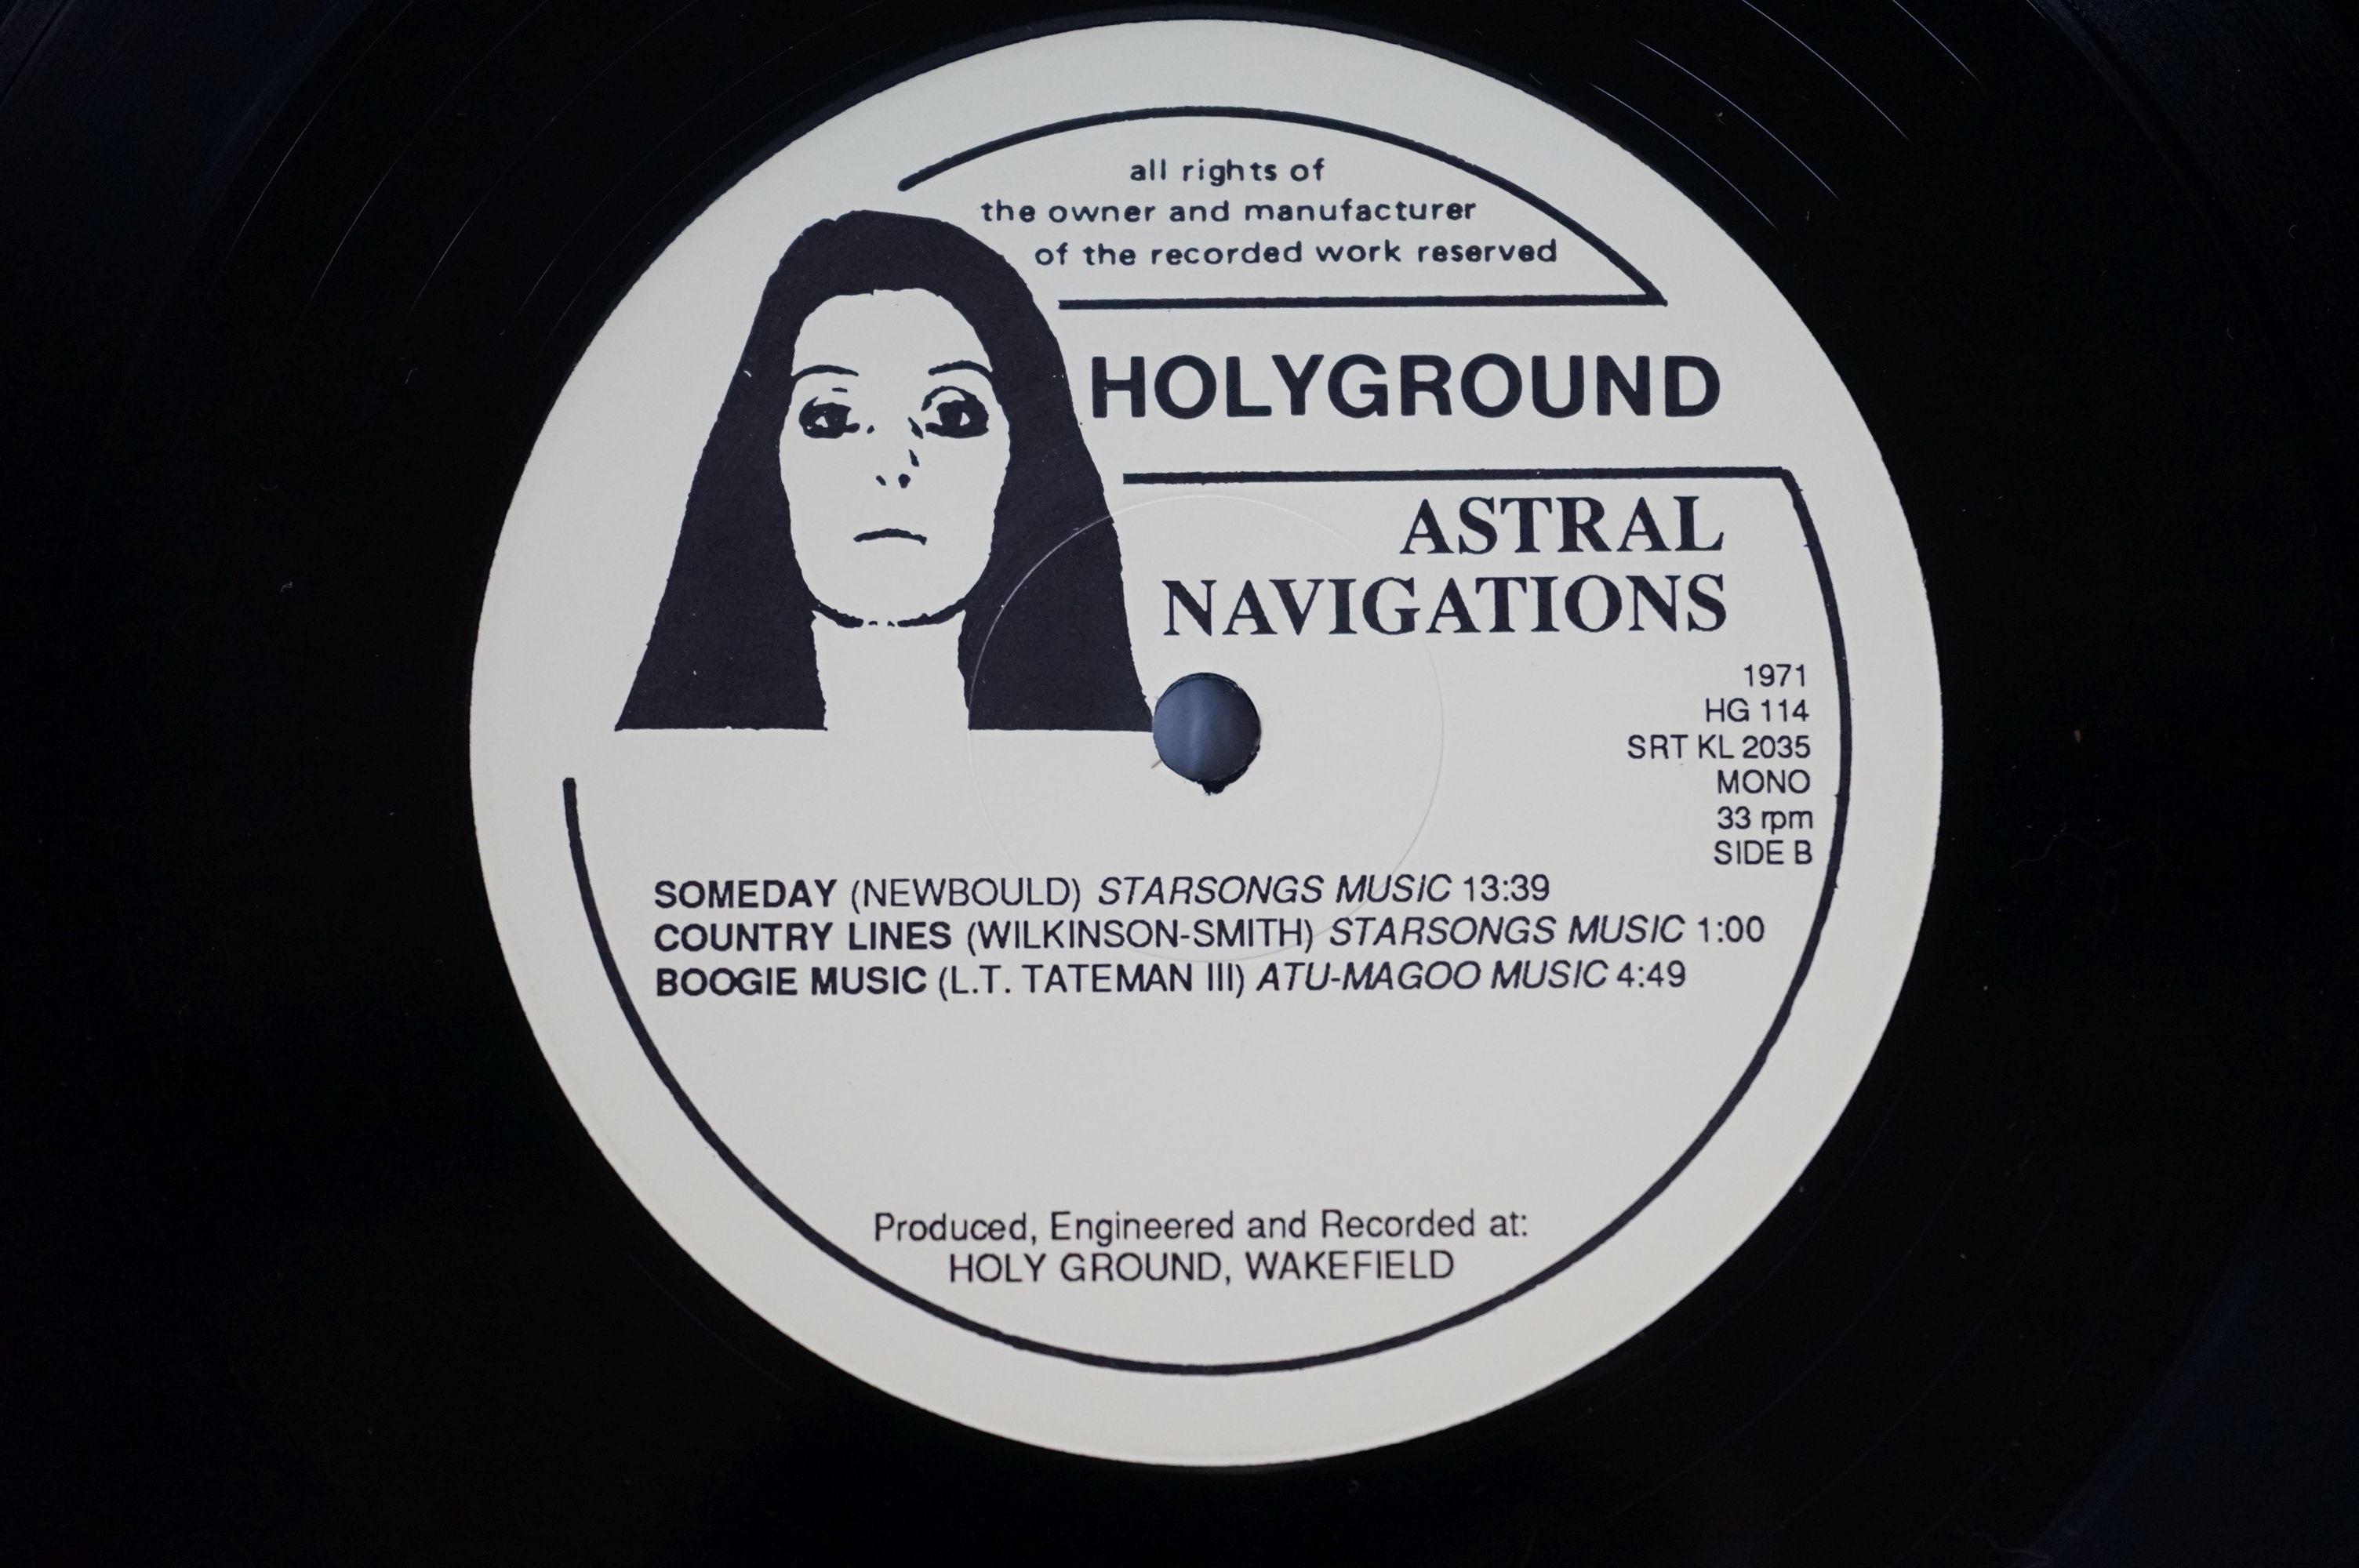 Vinyl - Lightyears Away / Thundermother ?? Astral Navigations (HG 114) numbered Ltd Edition - Image 5 of 12